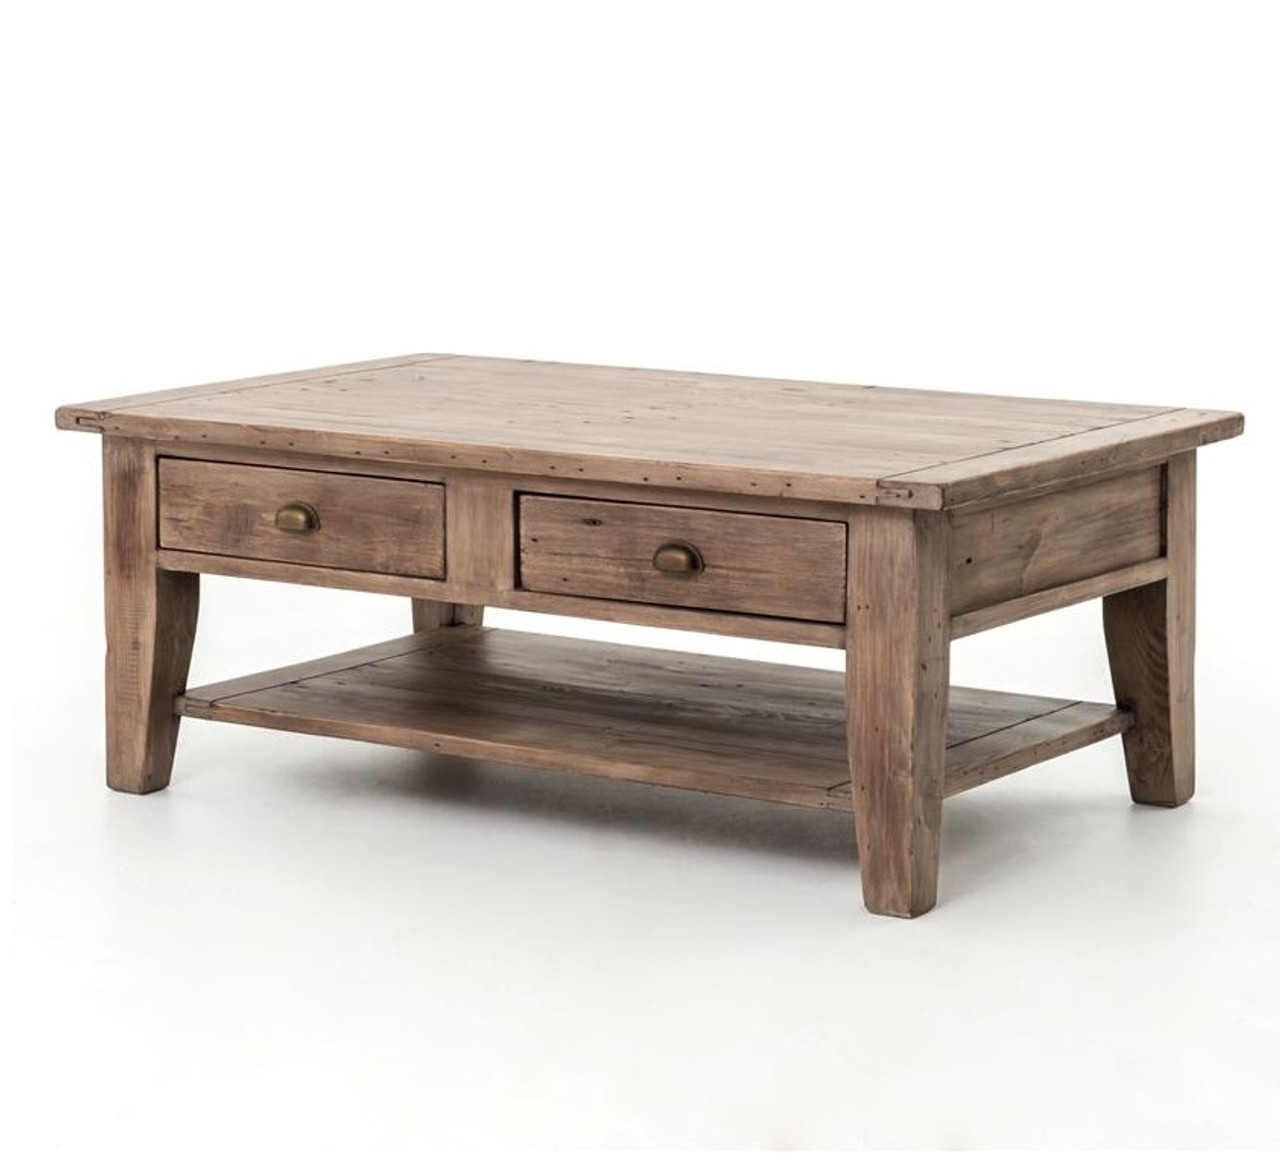 Coastal solid wood rustic coffee table with drawers zin home